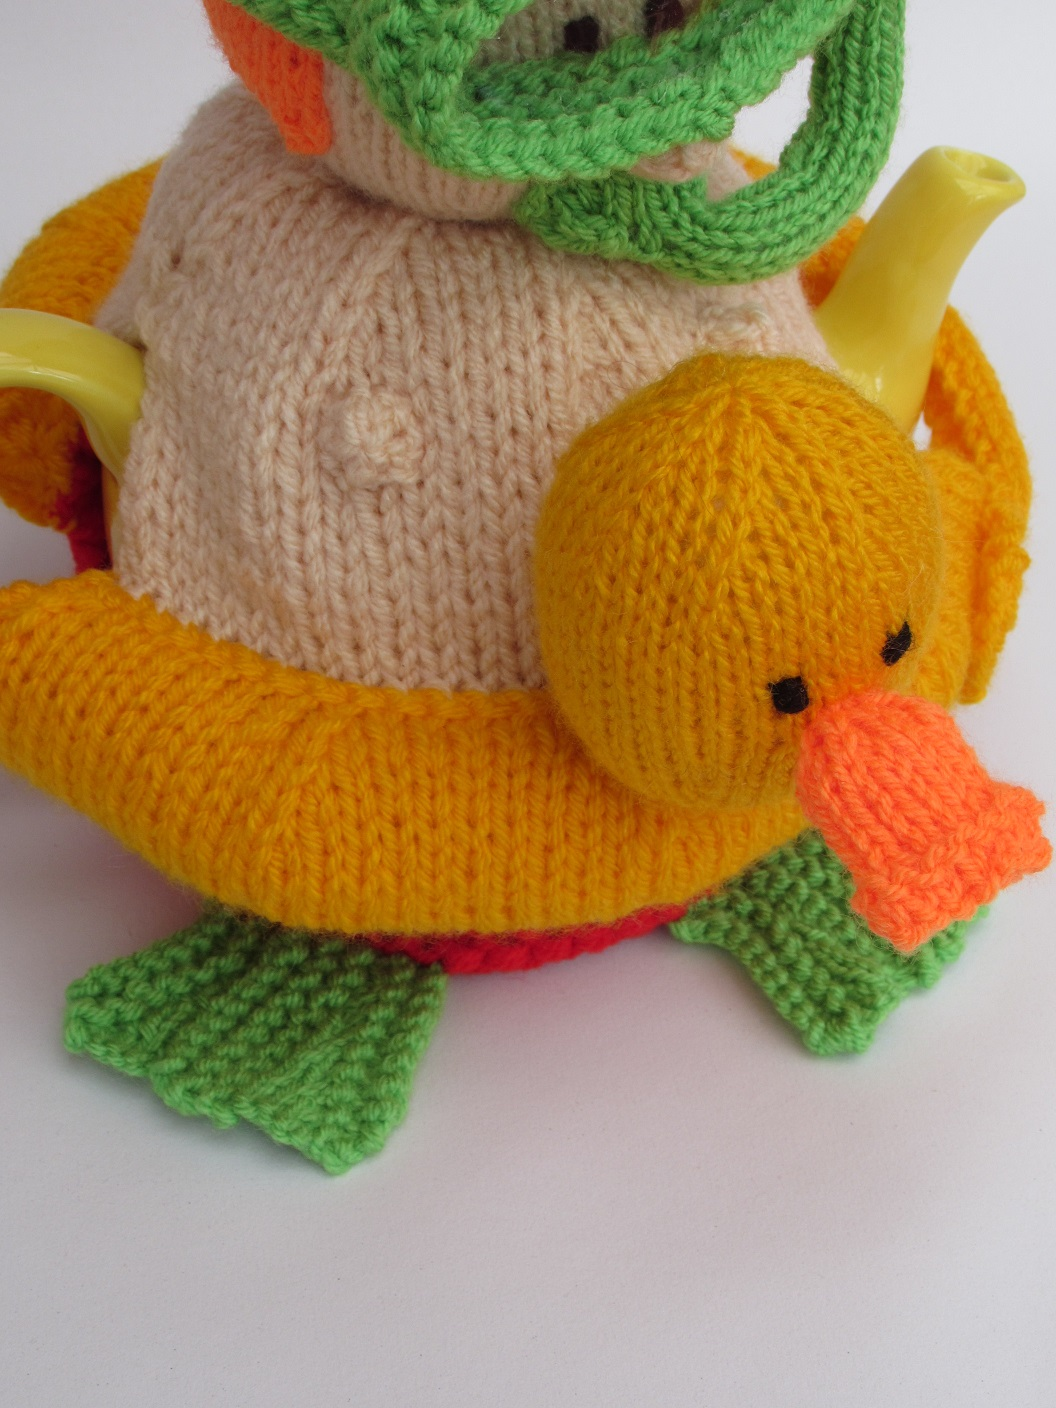 Snorkeler knitting pattern